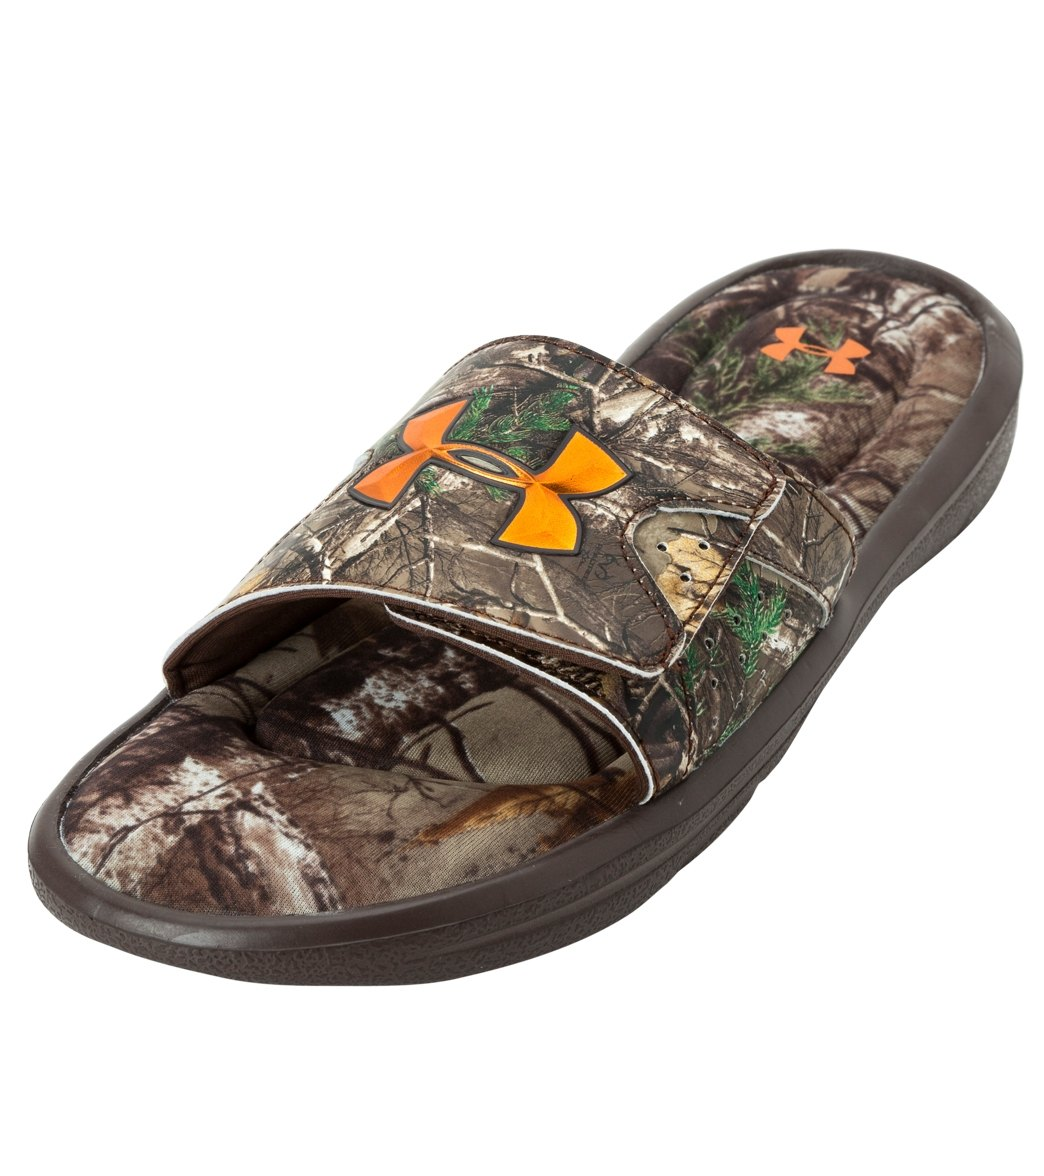 6b11f0ea Under Armour Men's Ignite Camo IV Slide Sandals